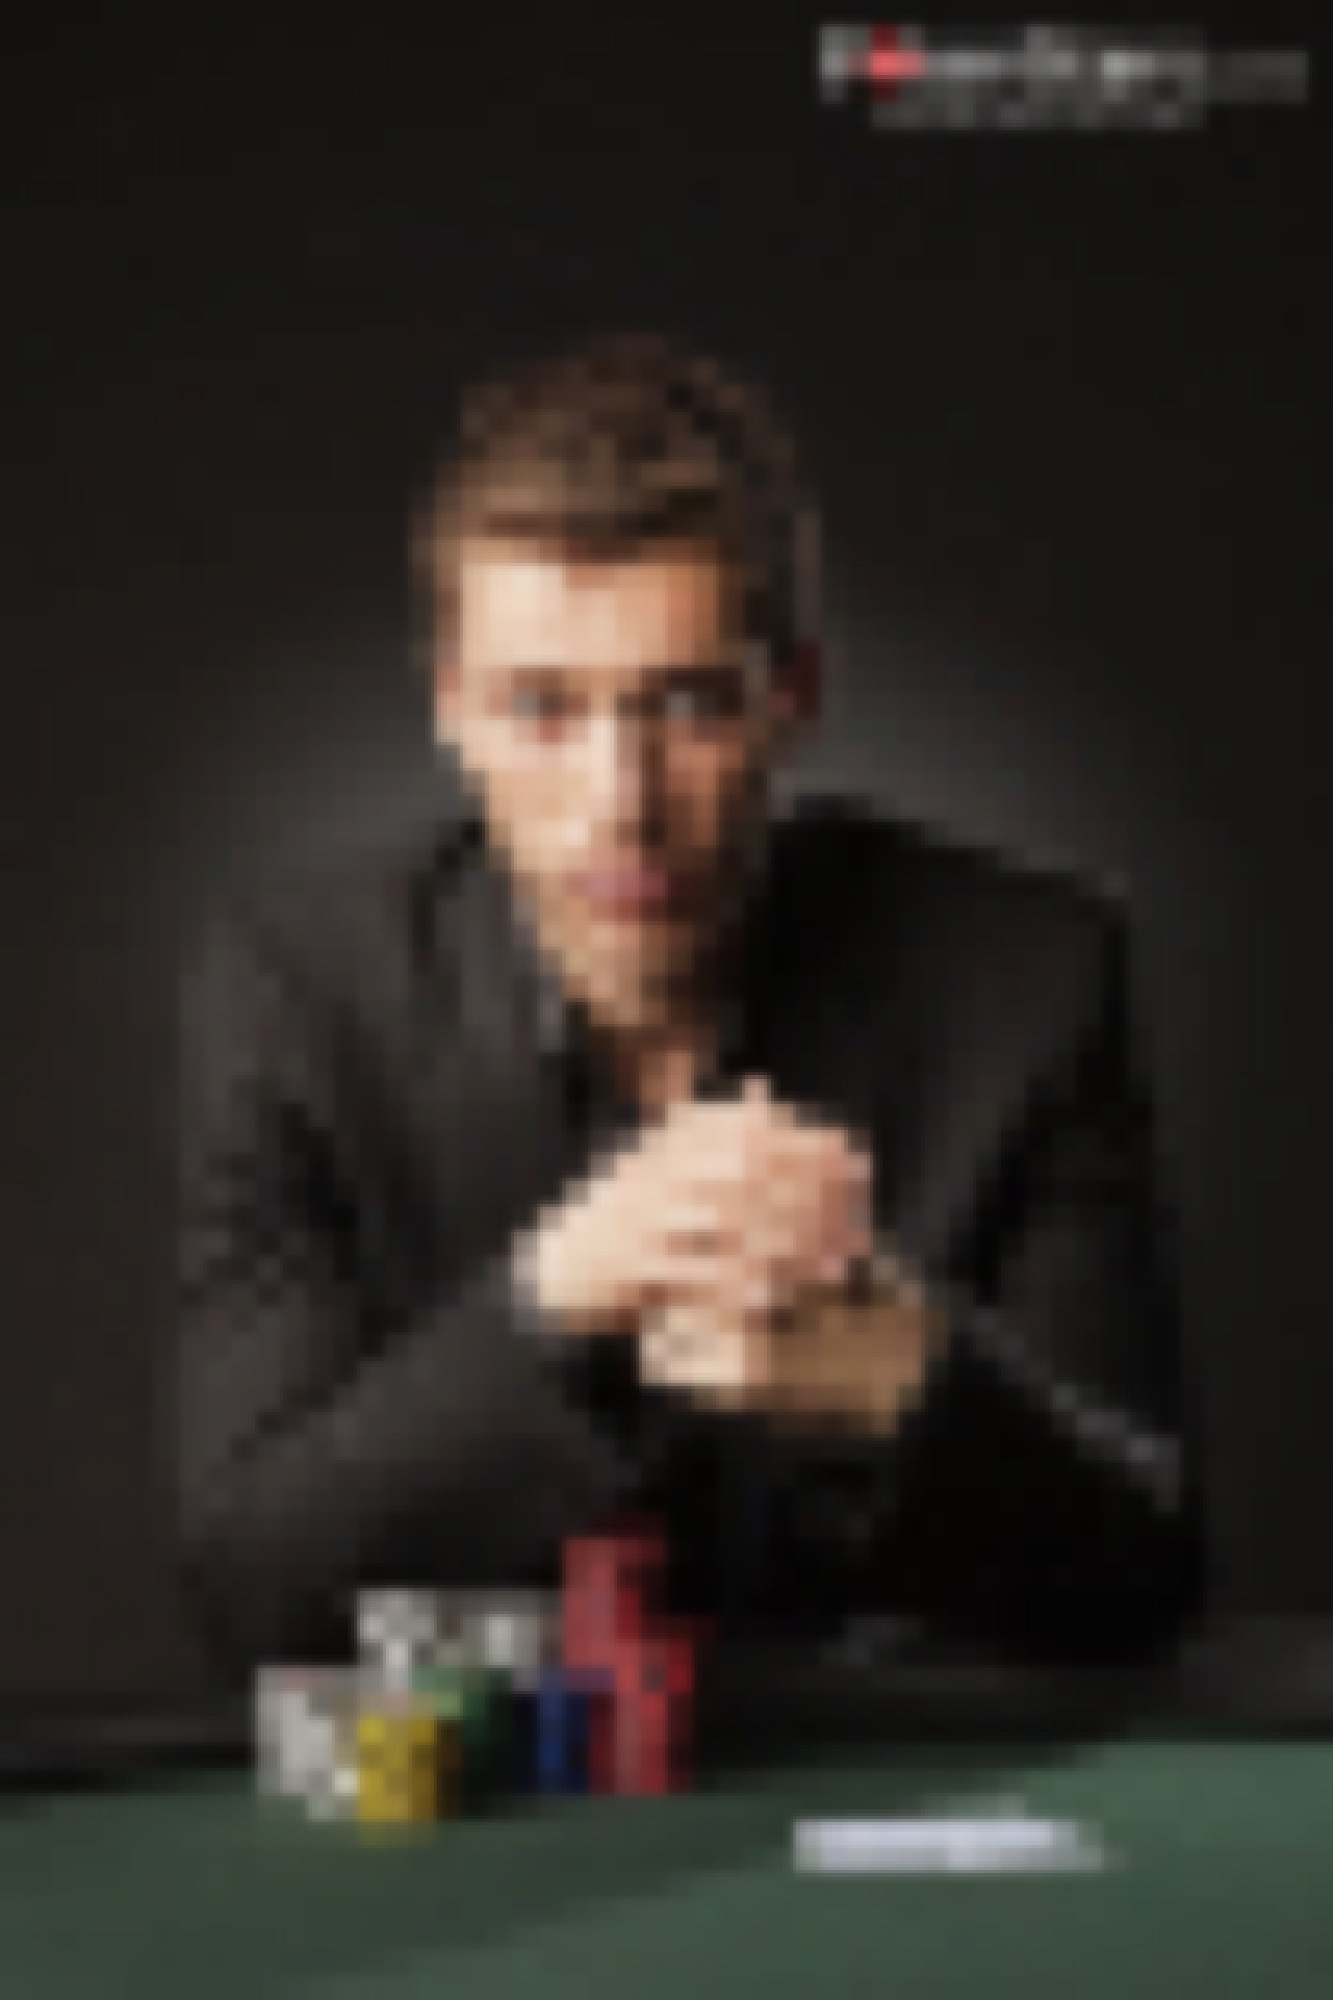 PokerStars / Marcus Hellner